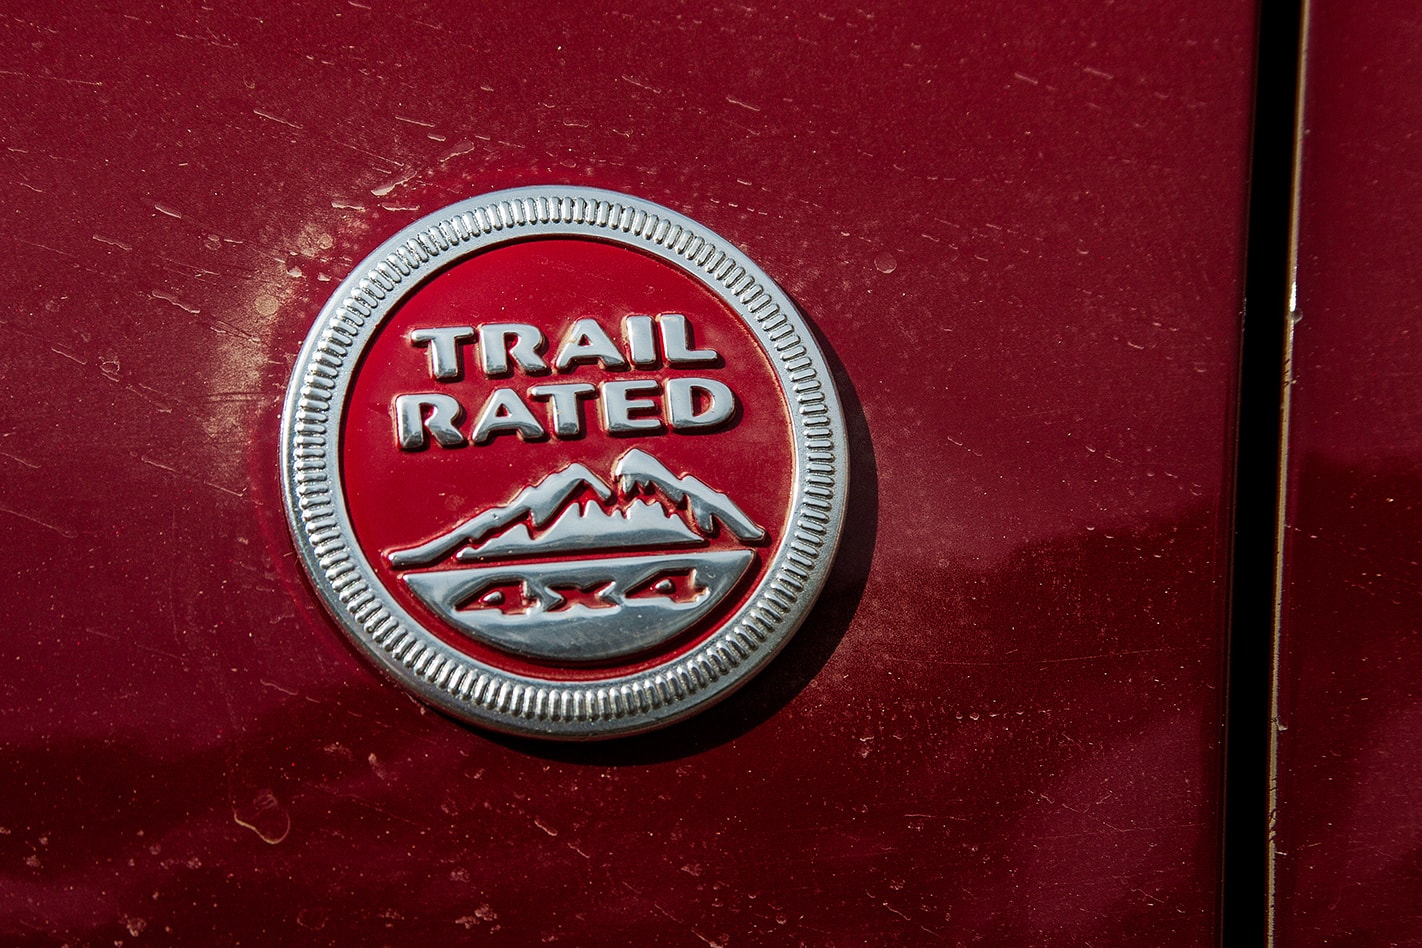 Jeep Grand Cherokee Trailhawk trail rated badge